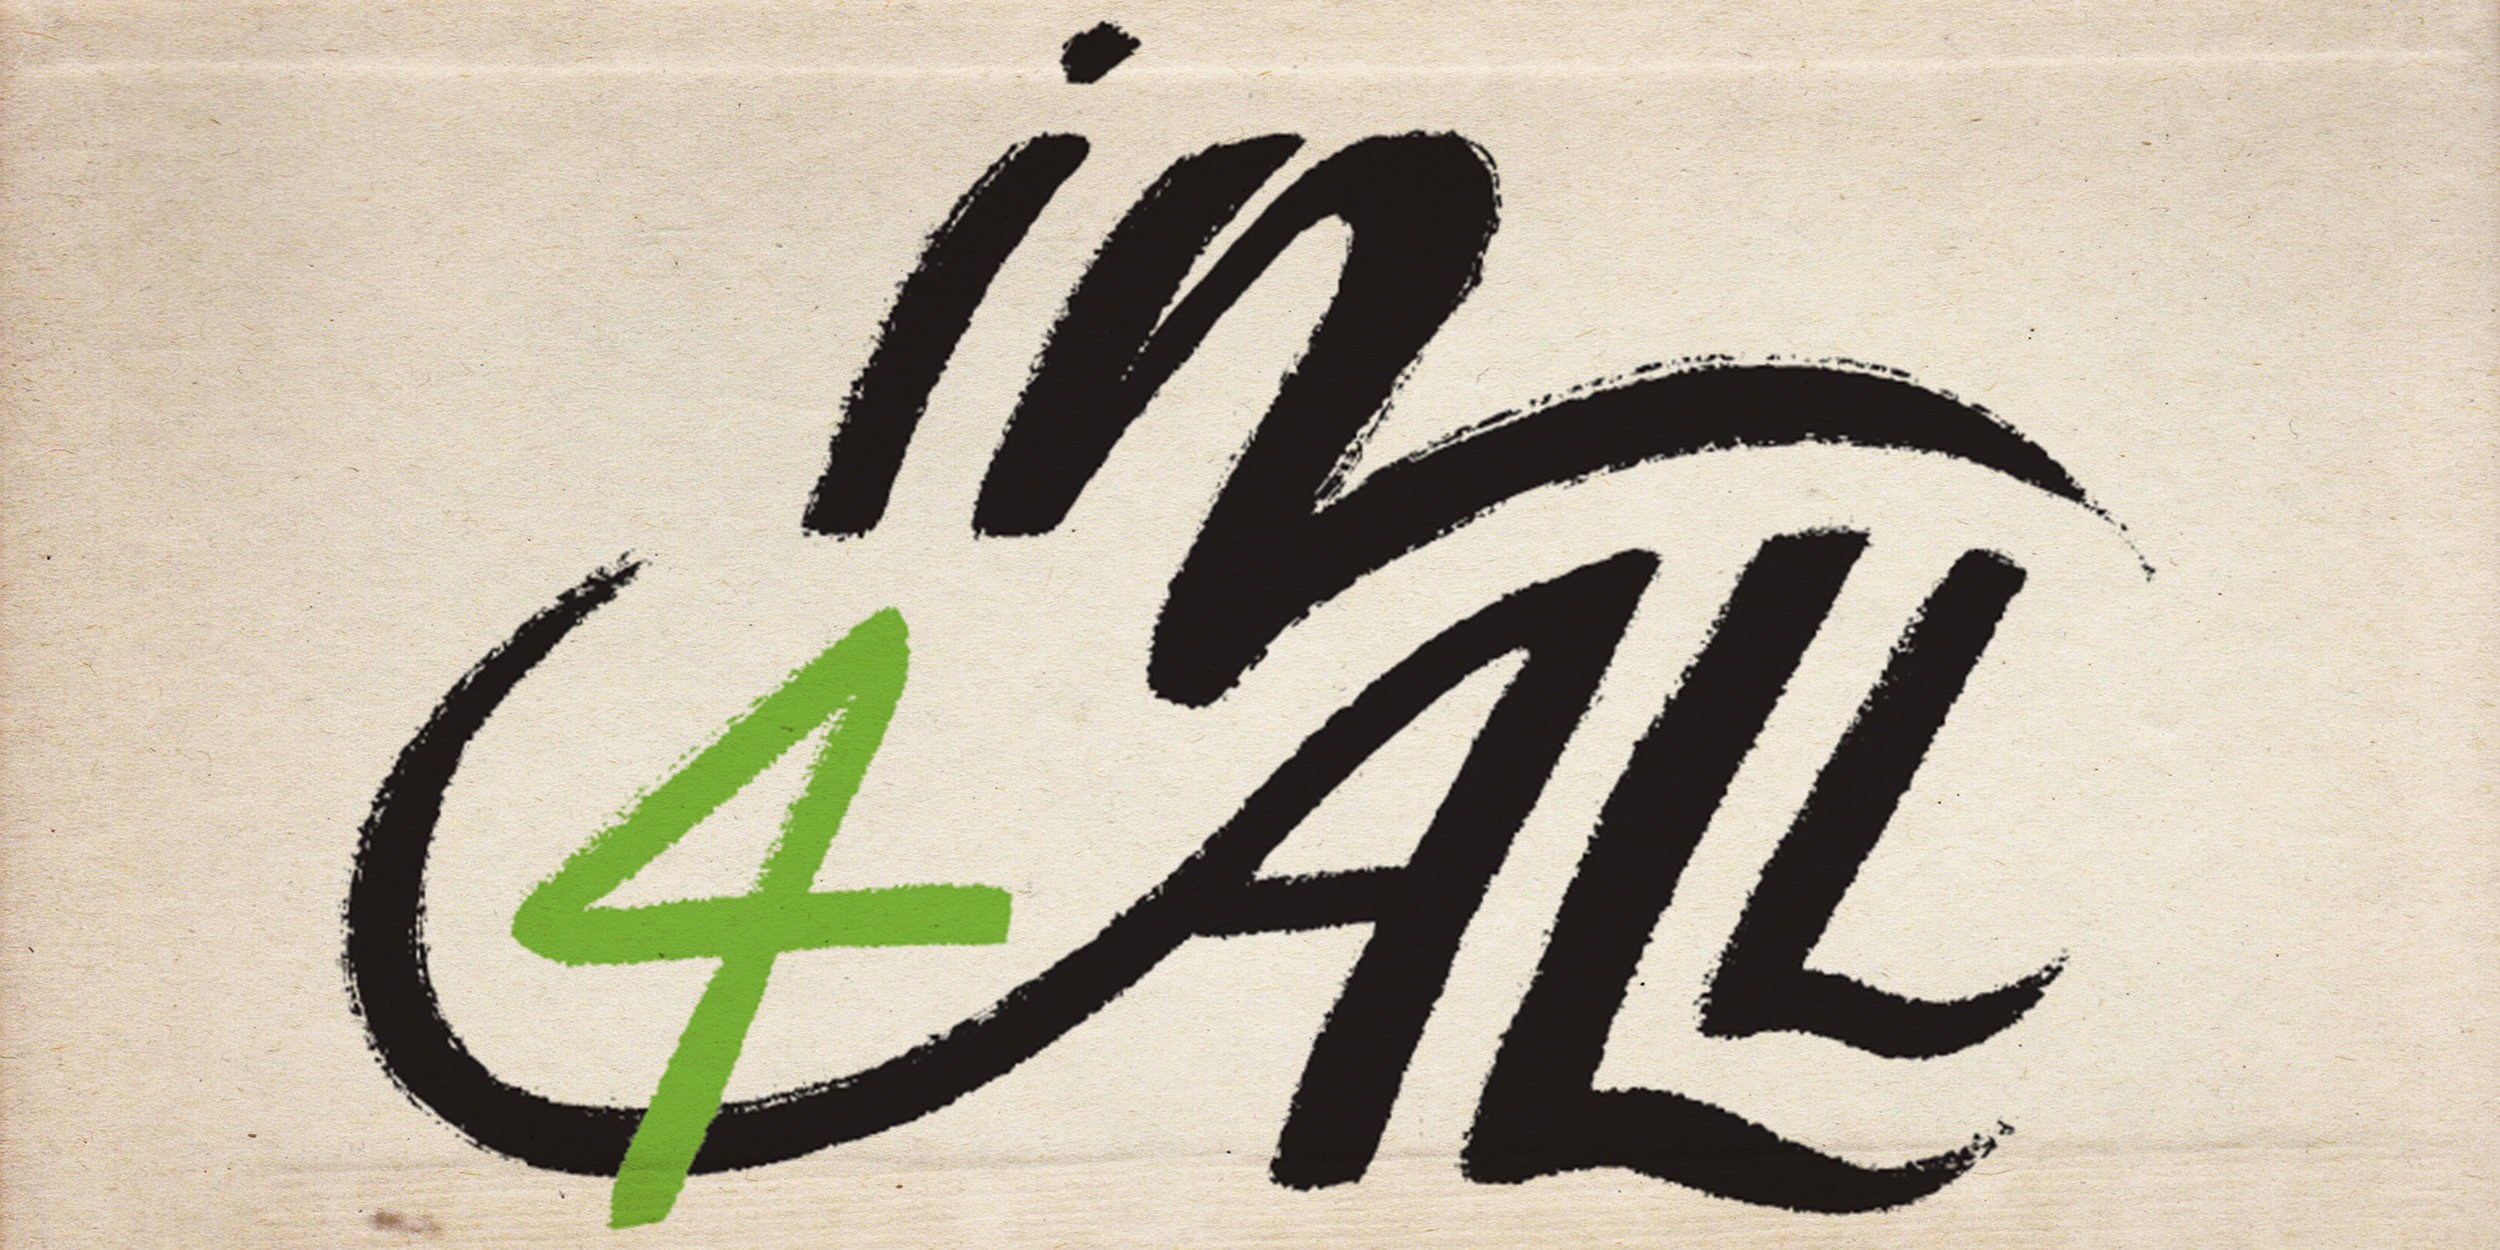 IN4ALL Logo On Paper.jpg